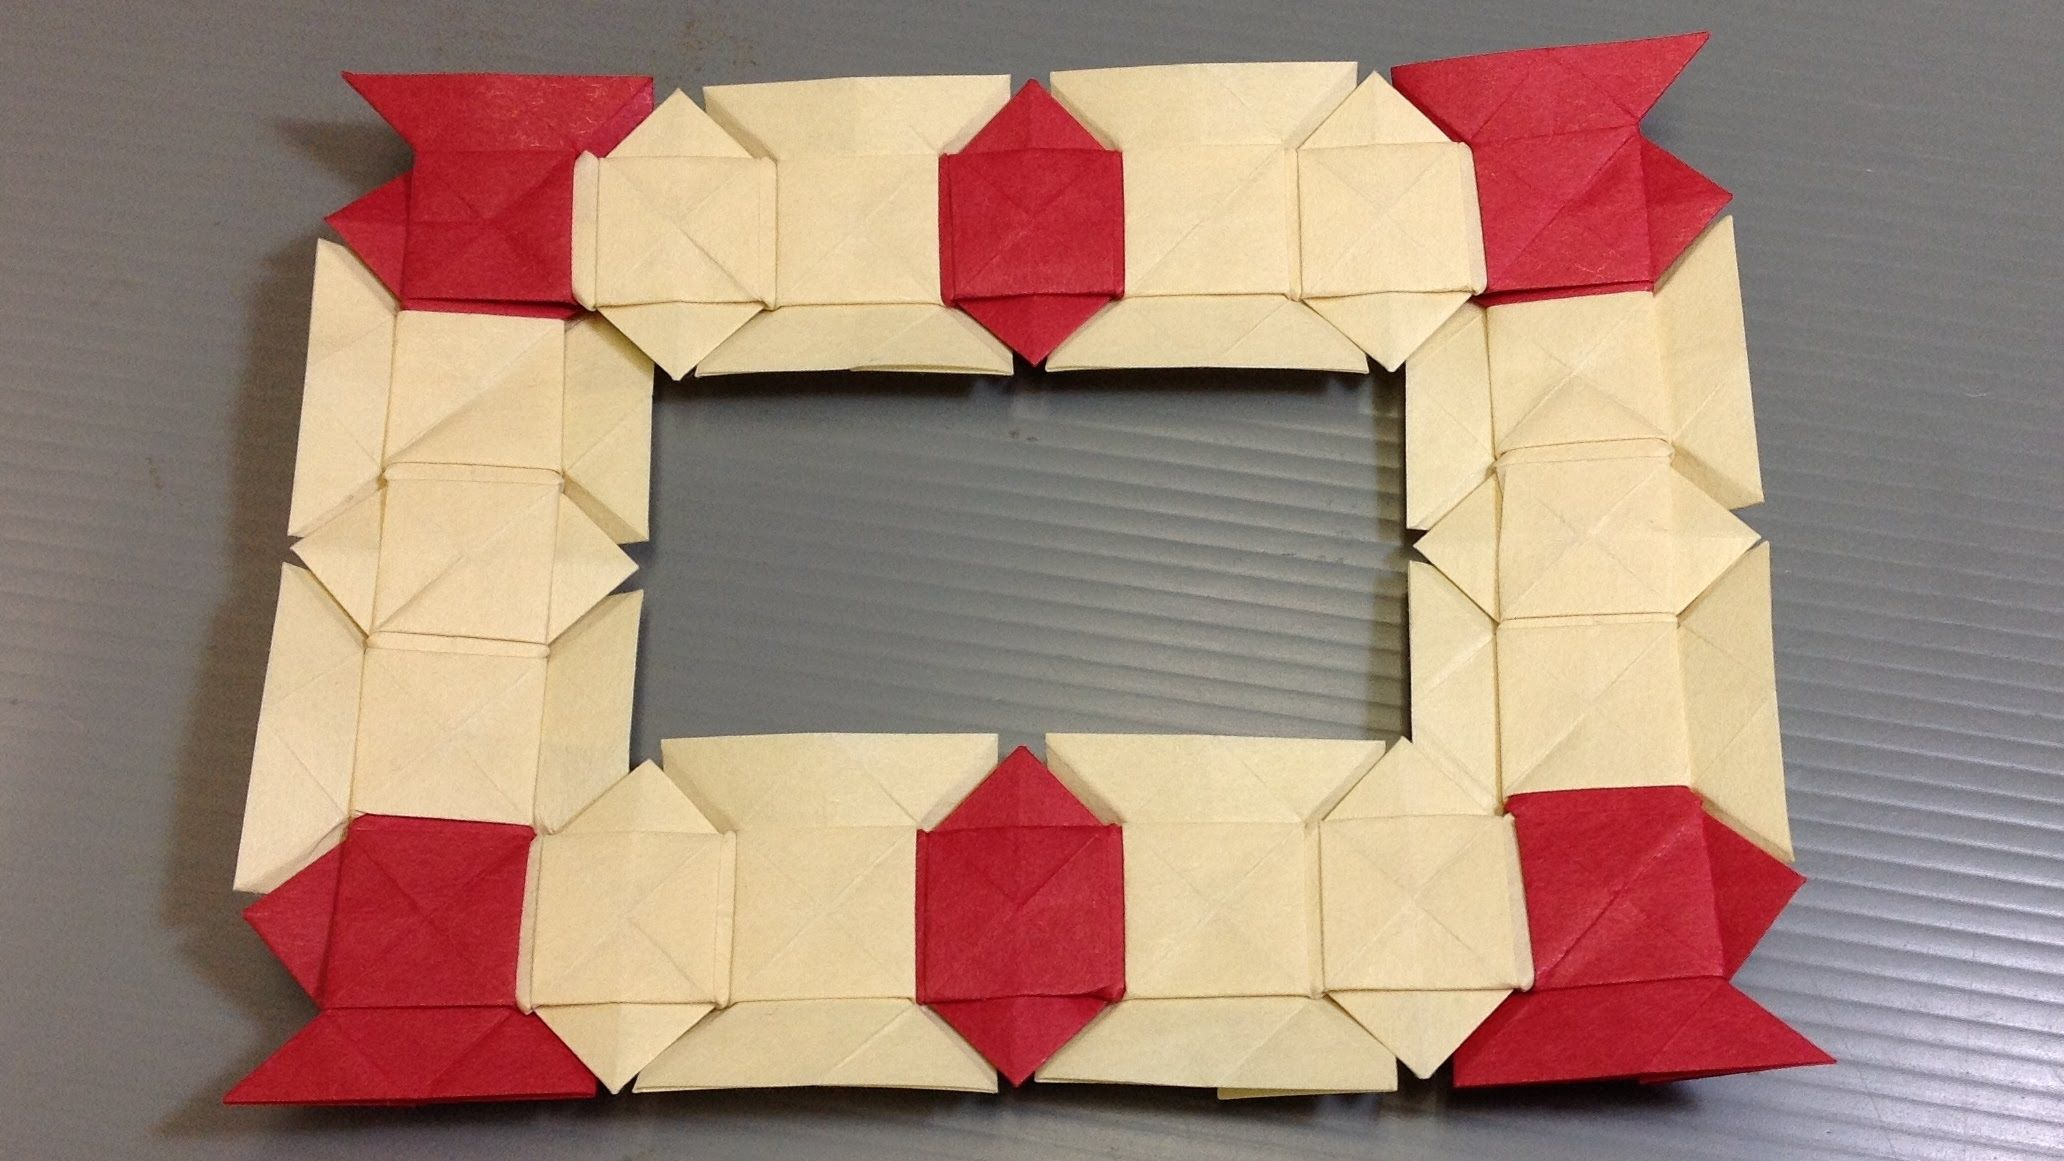 How To Make Your Own Origami Christmas Modular Frame Using